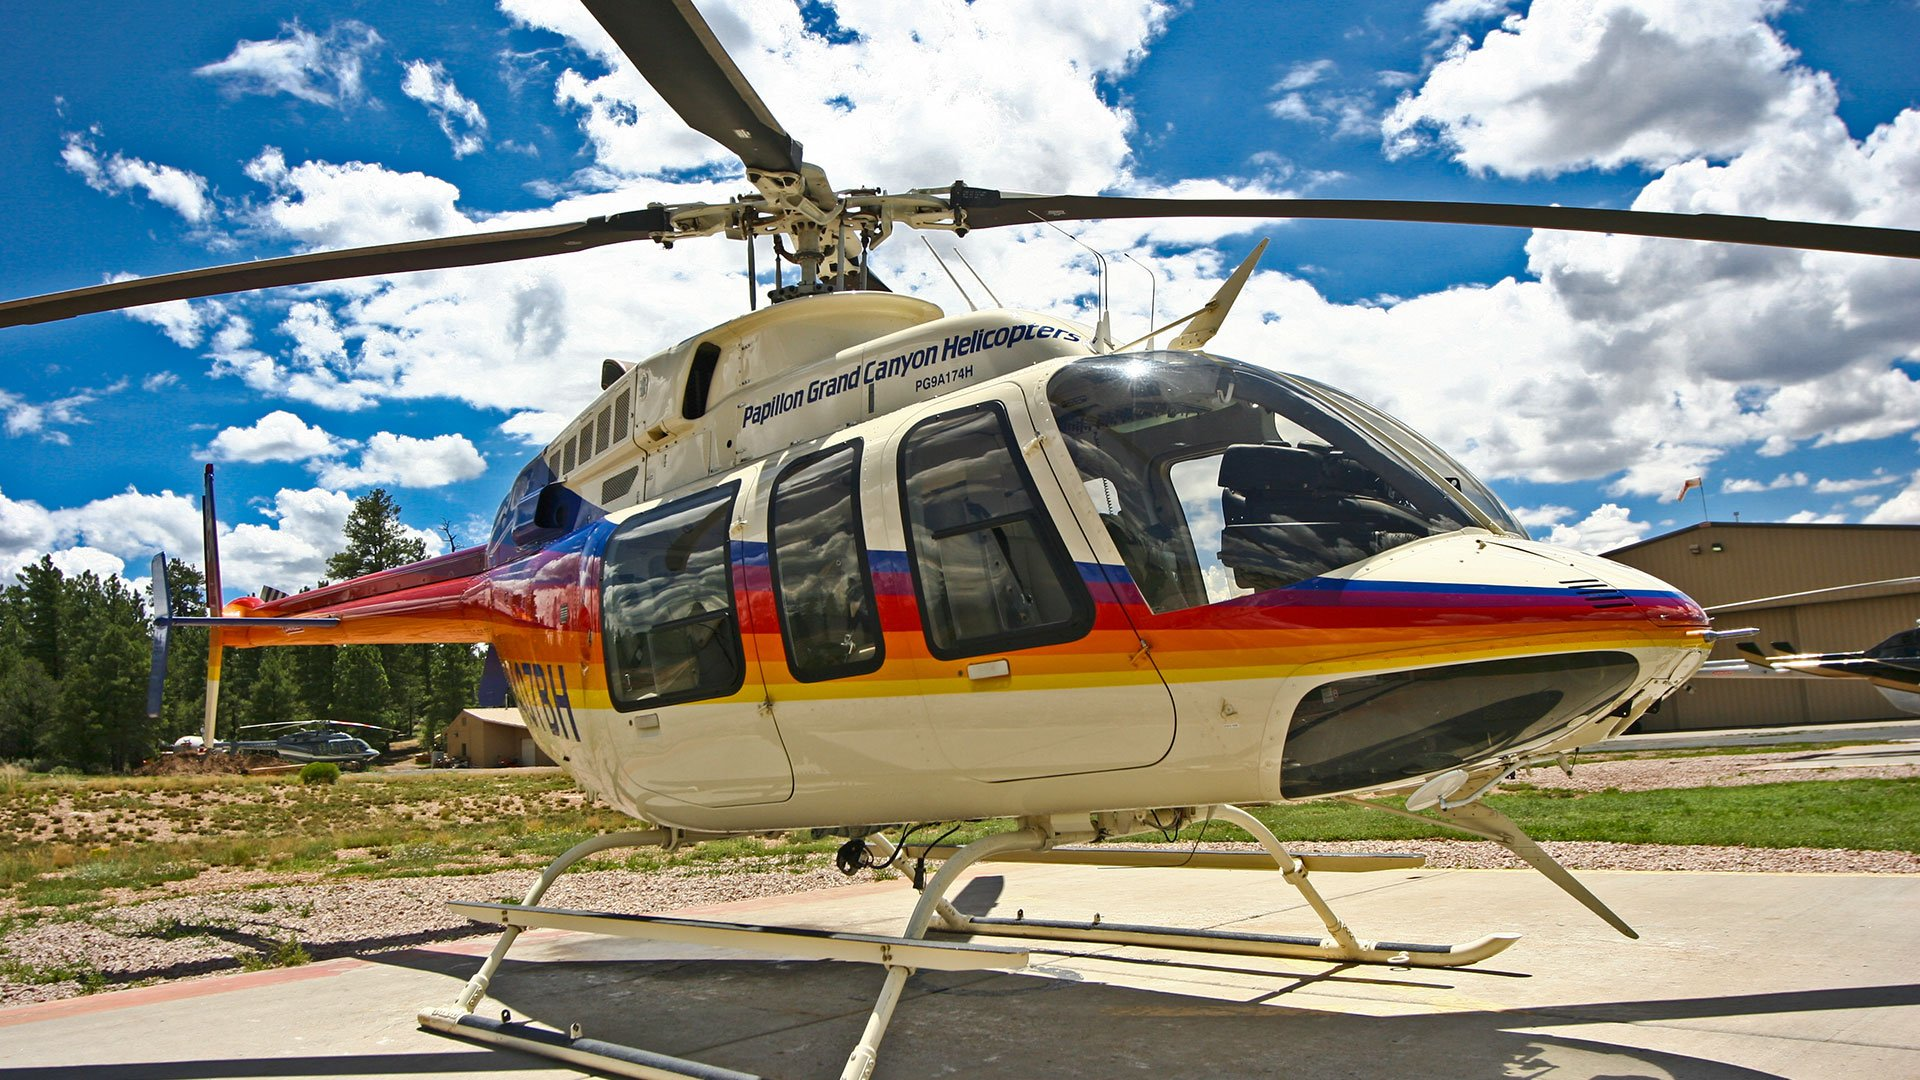 Bell helicopter landed at the Papillon heliport in Grand Canyon National Park.